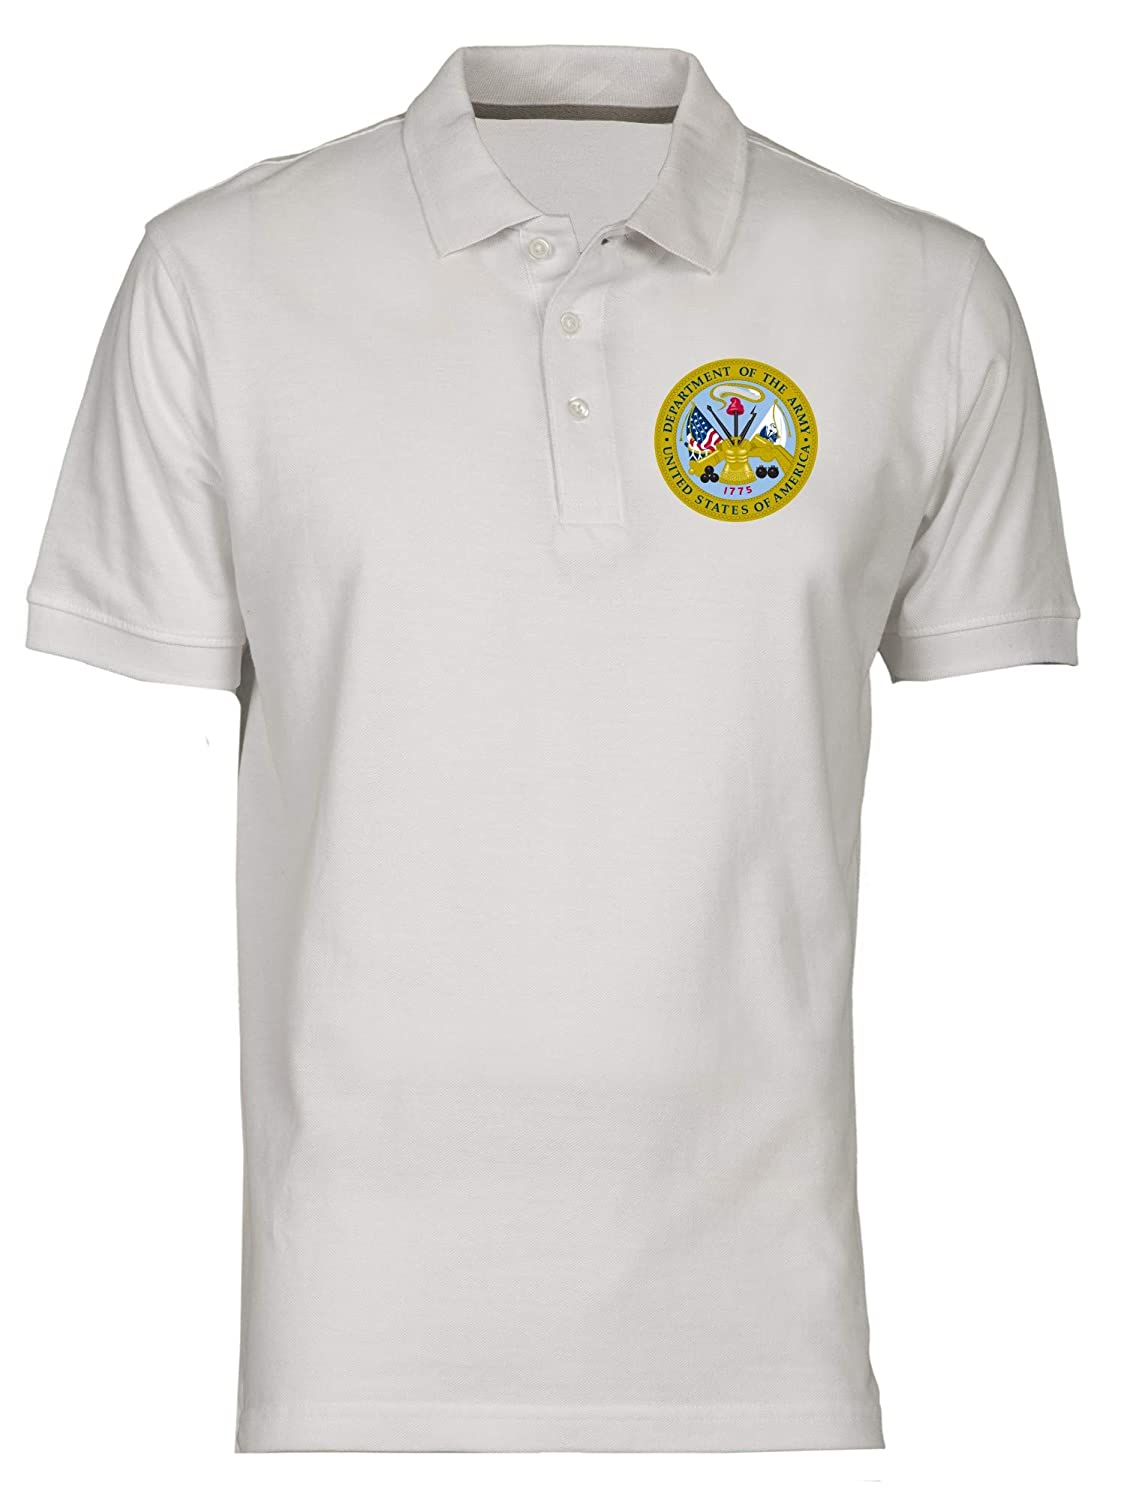 Polo por Hombre Blanco TM0423 Department of The Army USA: Amazon ...